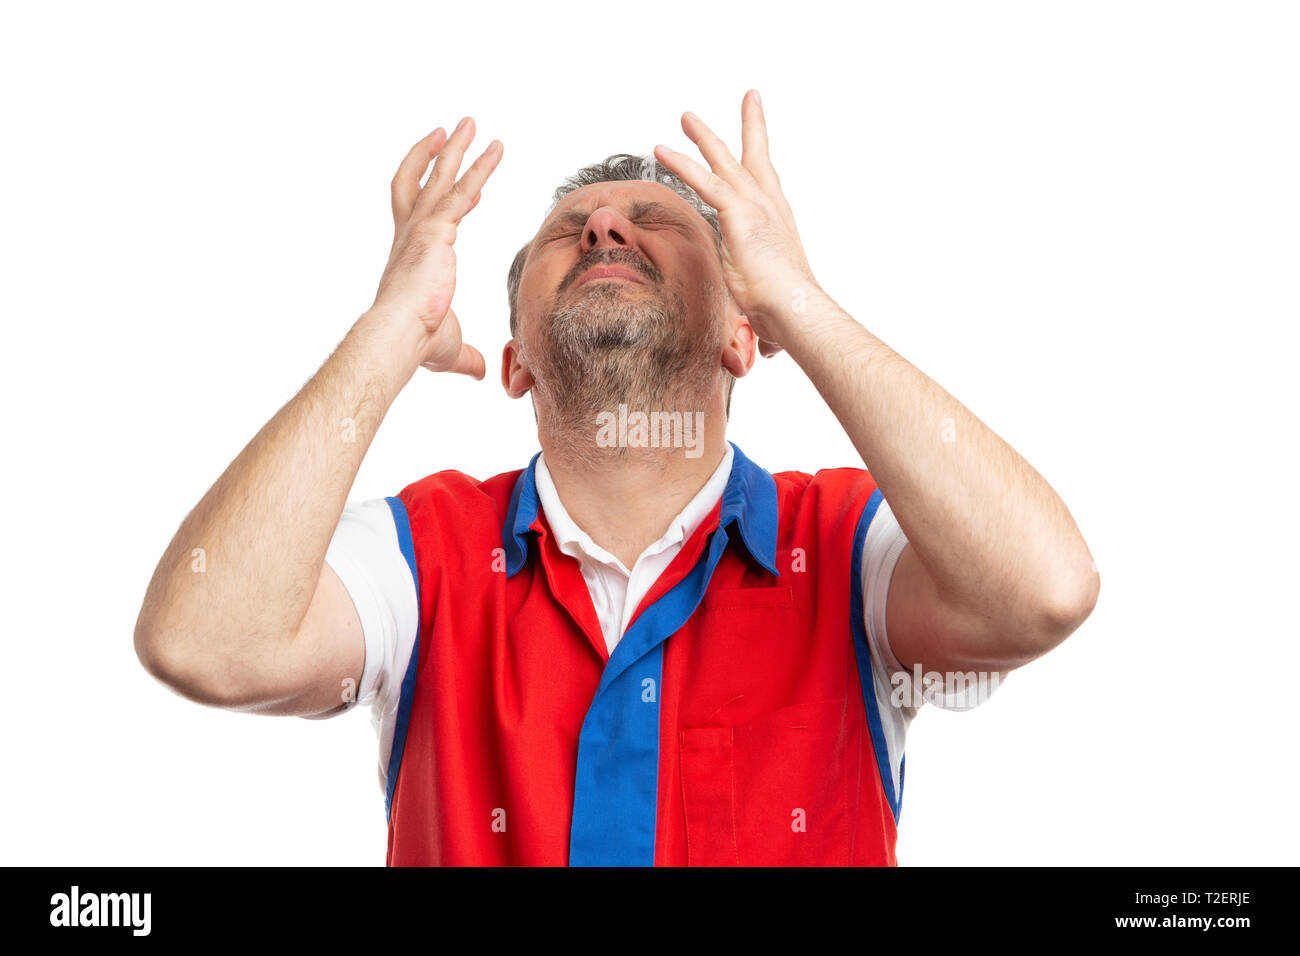 Stressed male hypermarket or supermarket worker with headache making despaired expression and gesture isolated on white background - Stock Image